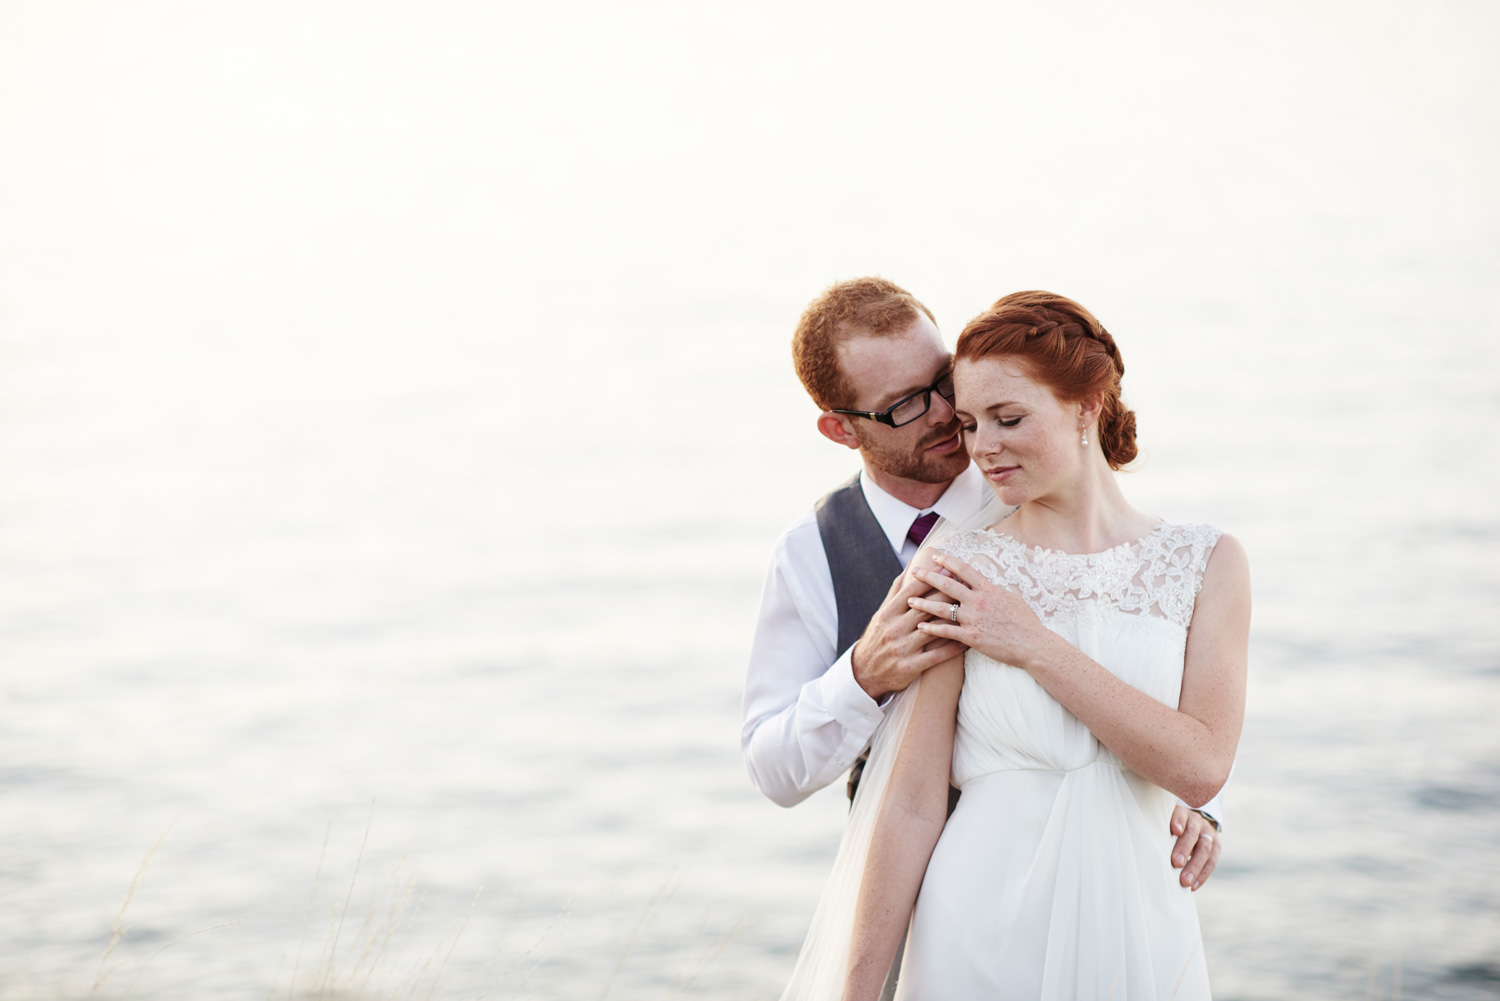 bride-and-groom-standing-by-the-lakes-edge-in-the-twilight.jpg